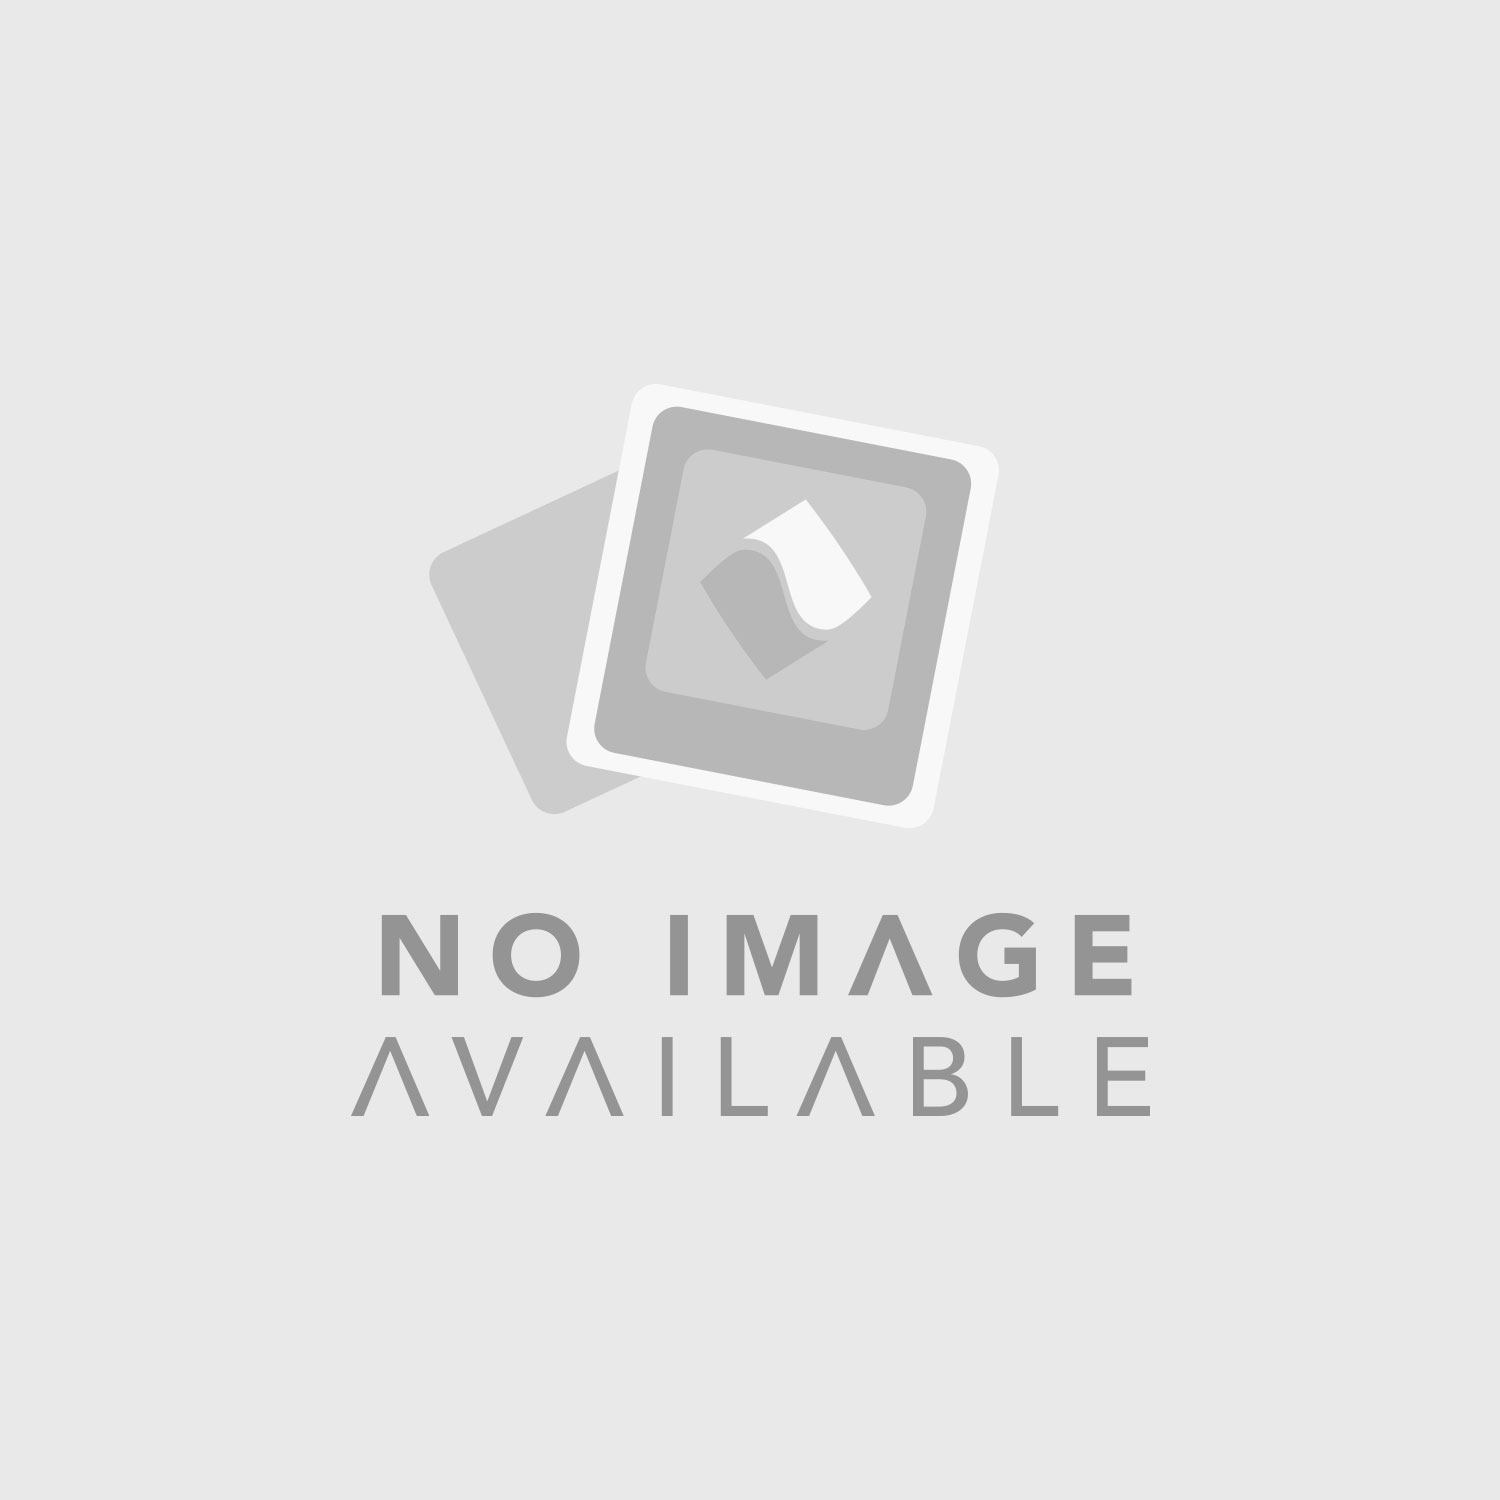 Shure MX395 Microflex Low-Profile Omnidirectional Boundary Microphone (White)